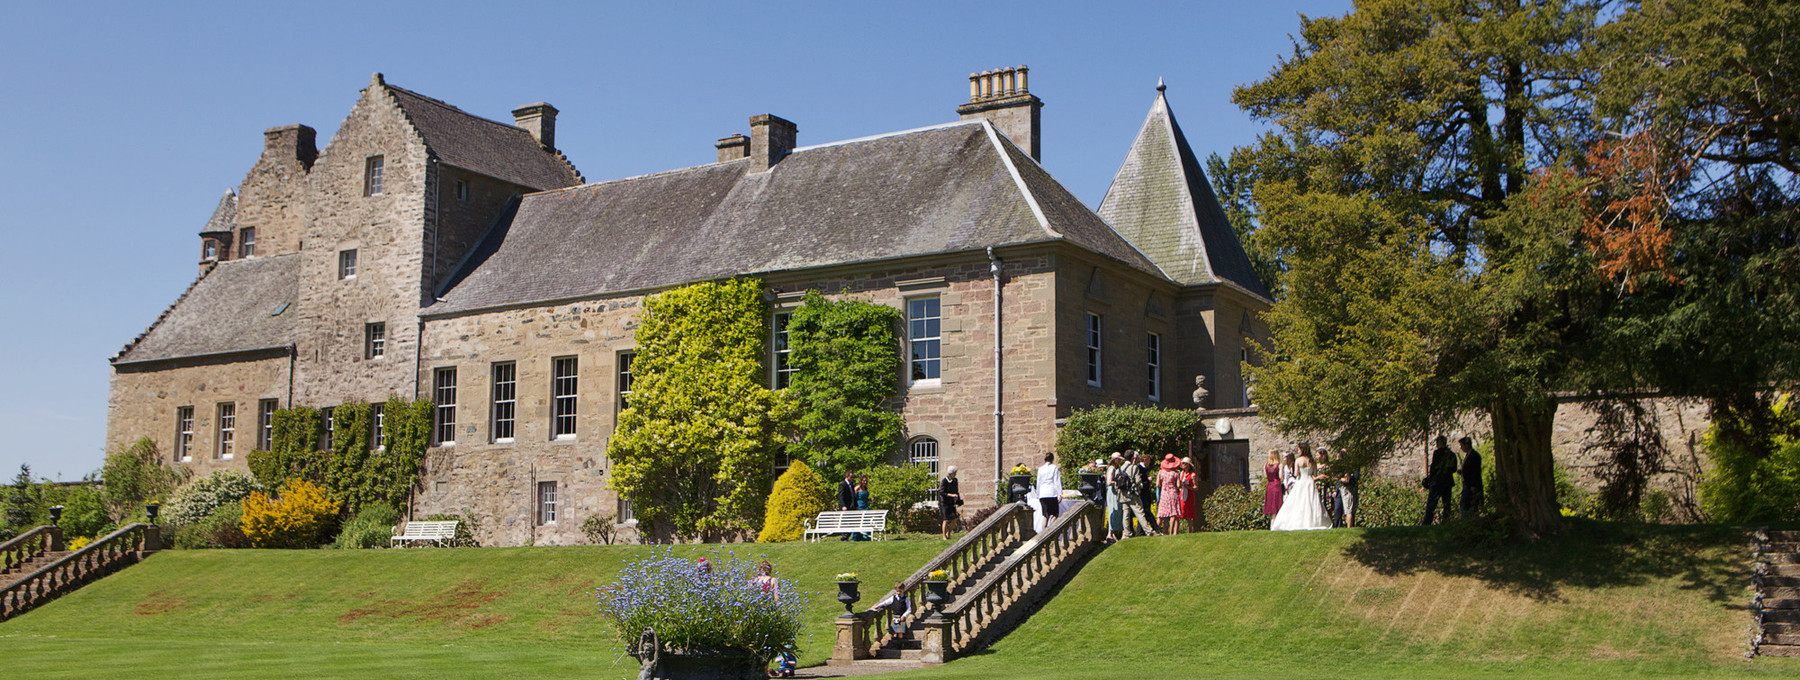 Murthly Estate facade from the garden - A lovely, clear day in Murthly is ideal for a wedding - gardens in full bloom.